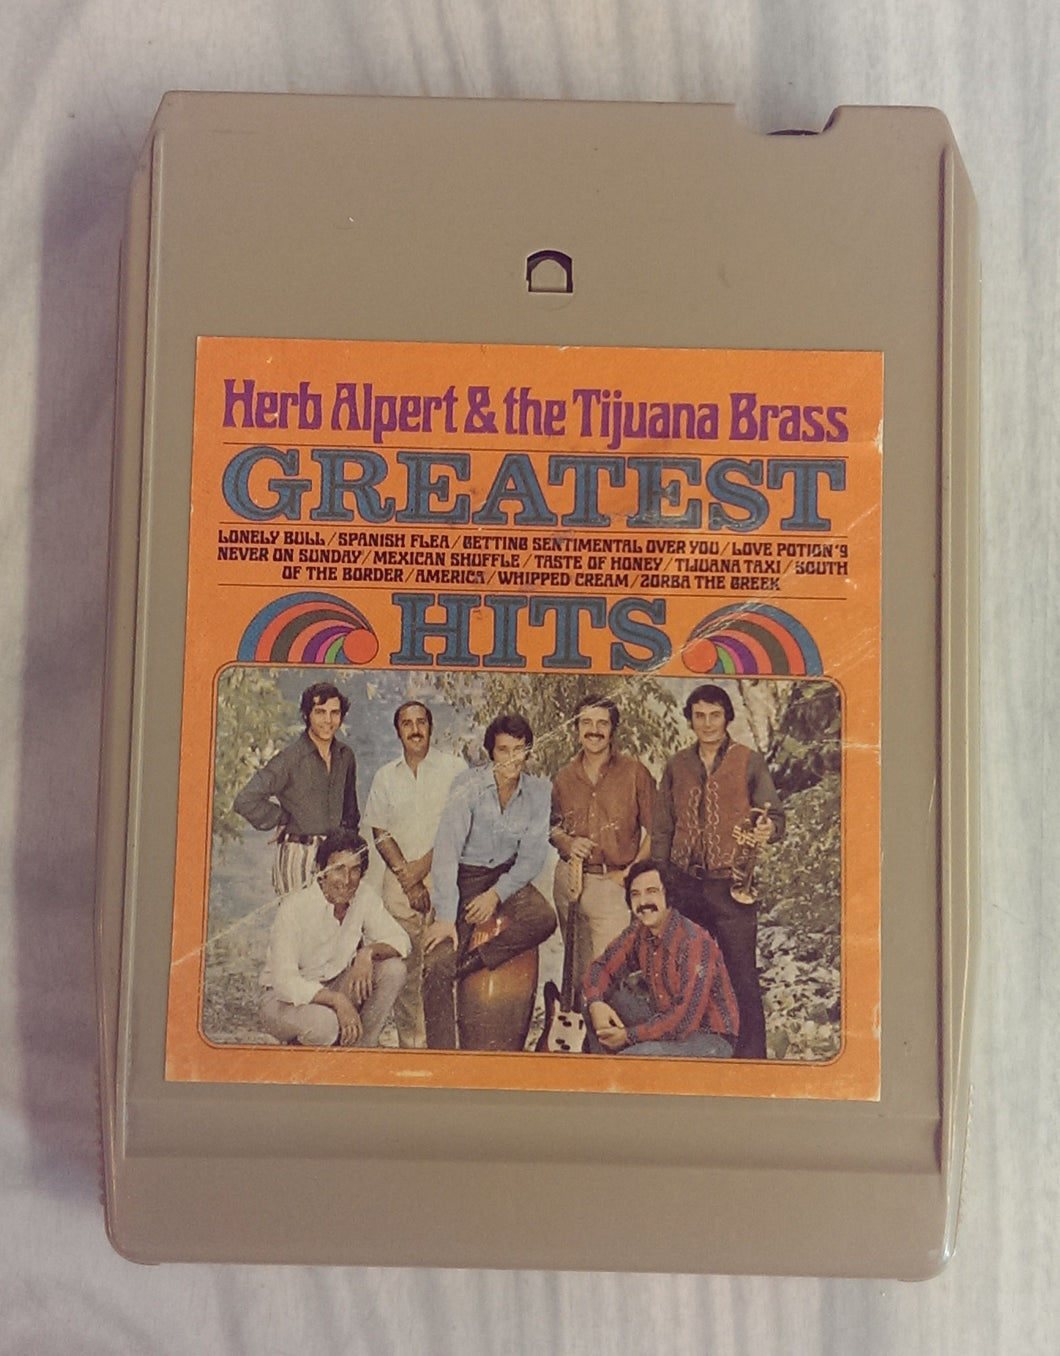 Herb Alpert and the Tijuana Brass - Greatest Hits